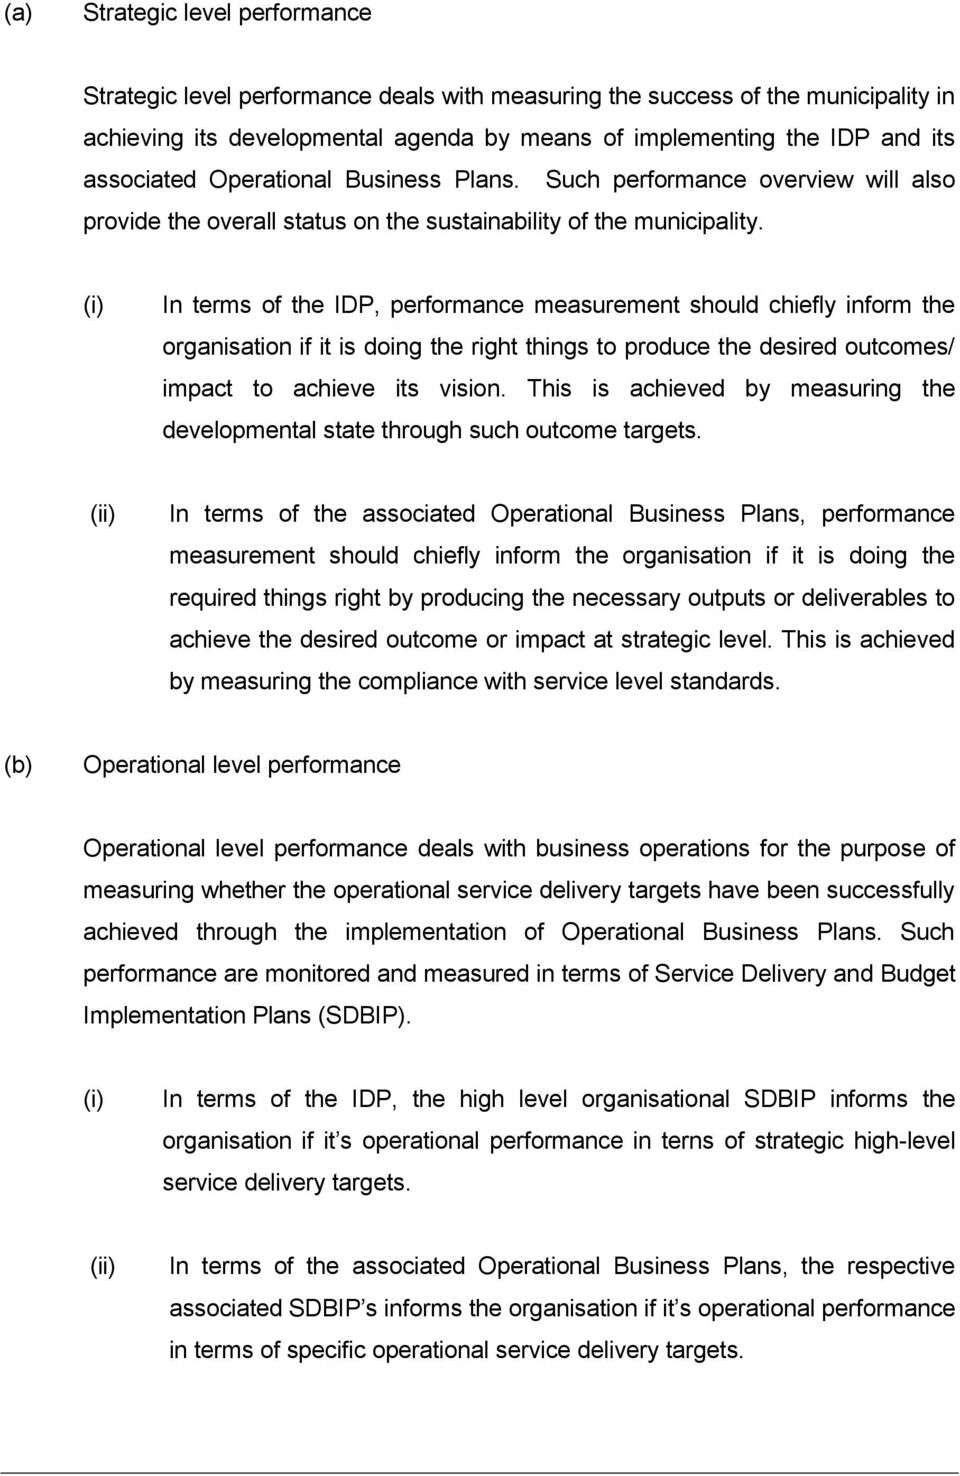 (i) In terms of the IDP, performance measurement should chiefly inform the organisation if it is doing the right things to produce the desired outcomes/ impact to achieve its vision.